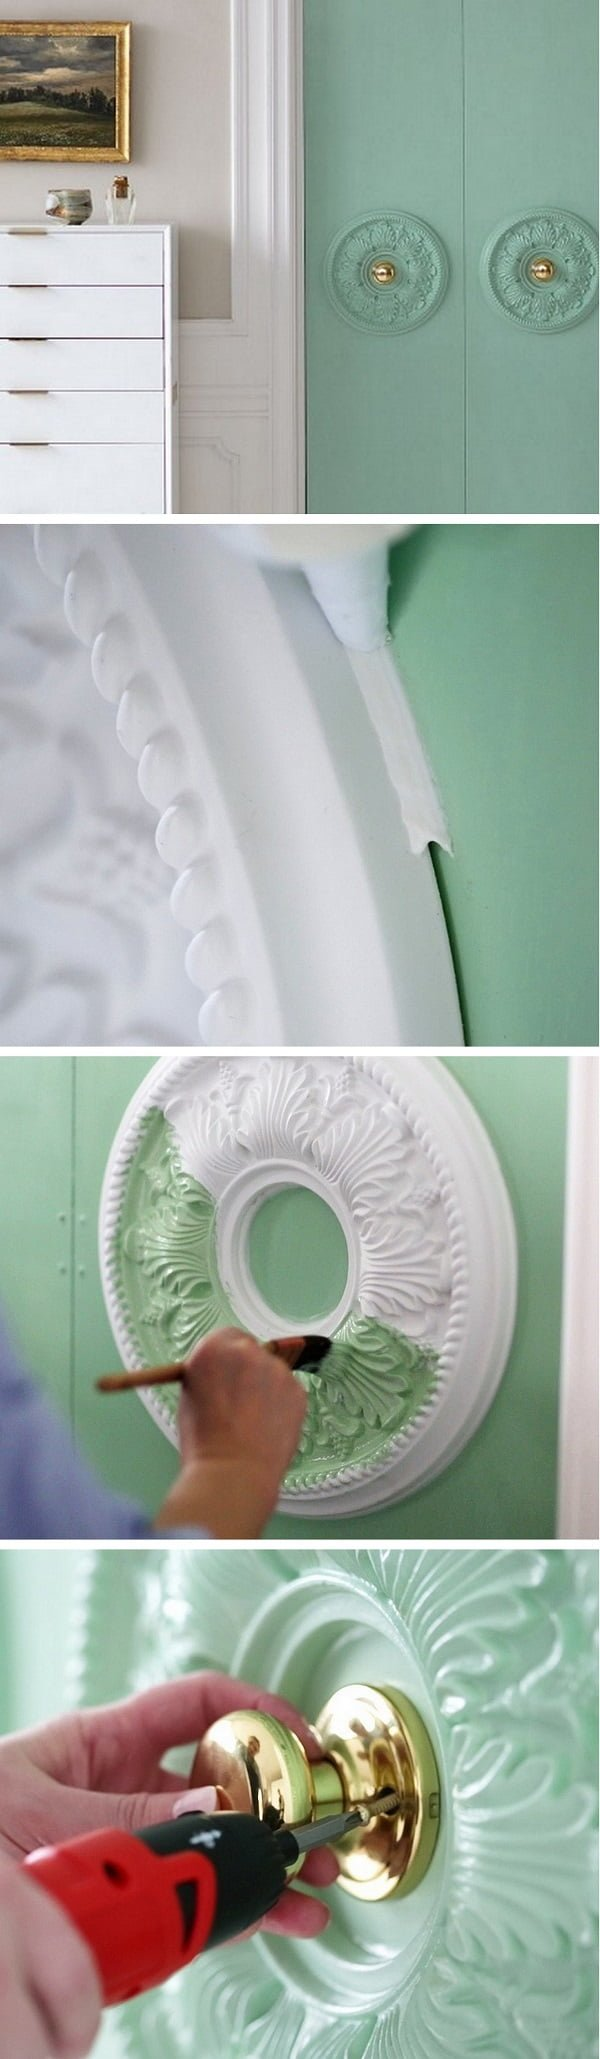 How to make DIY door embellishments with ceiling medallions